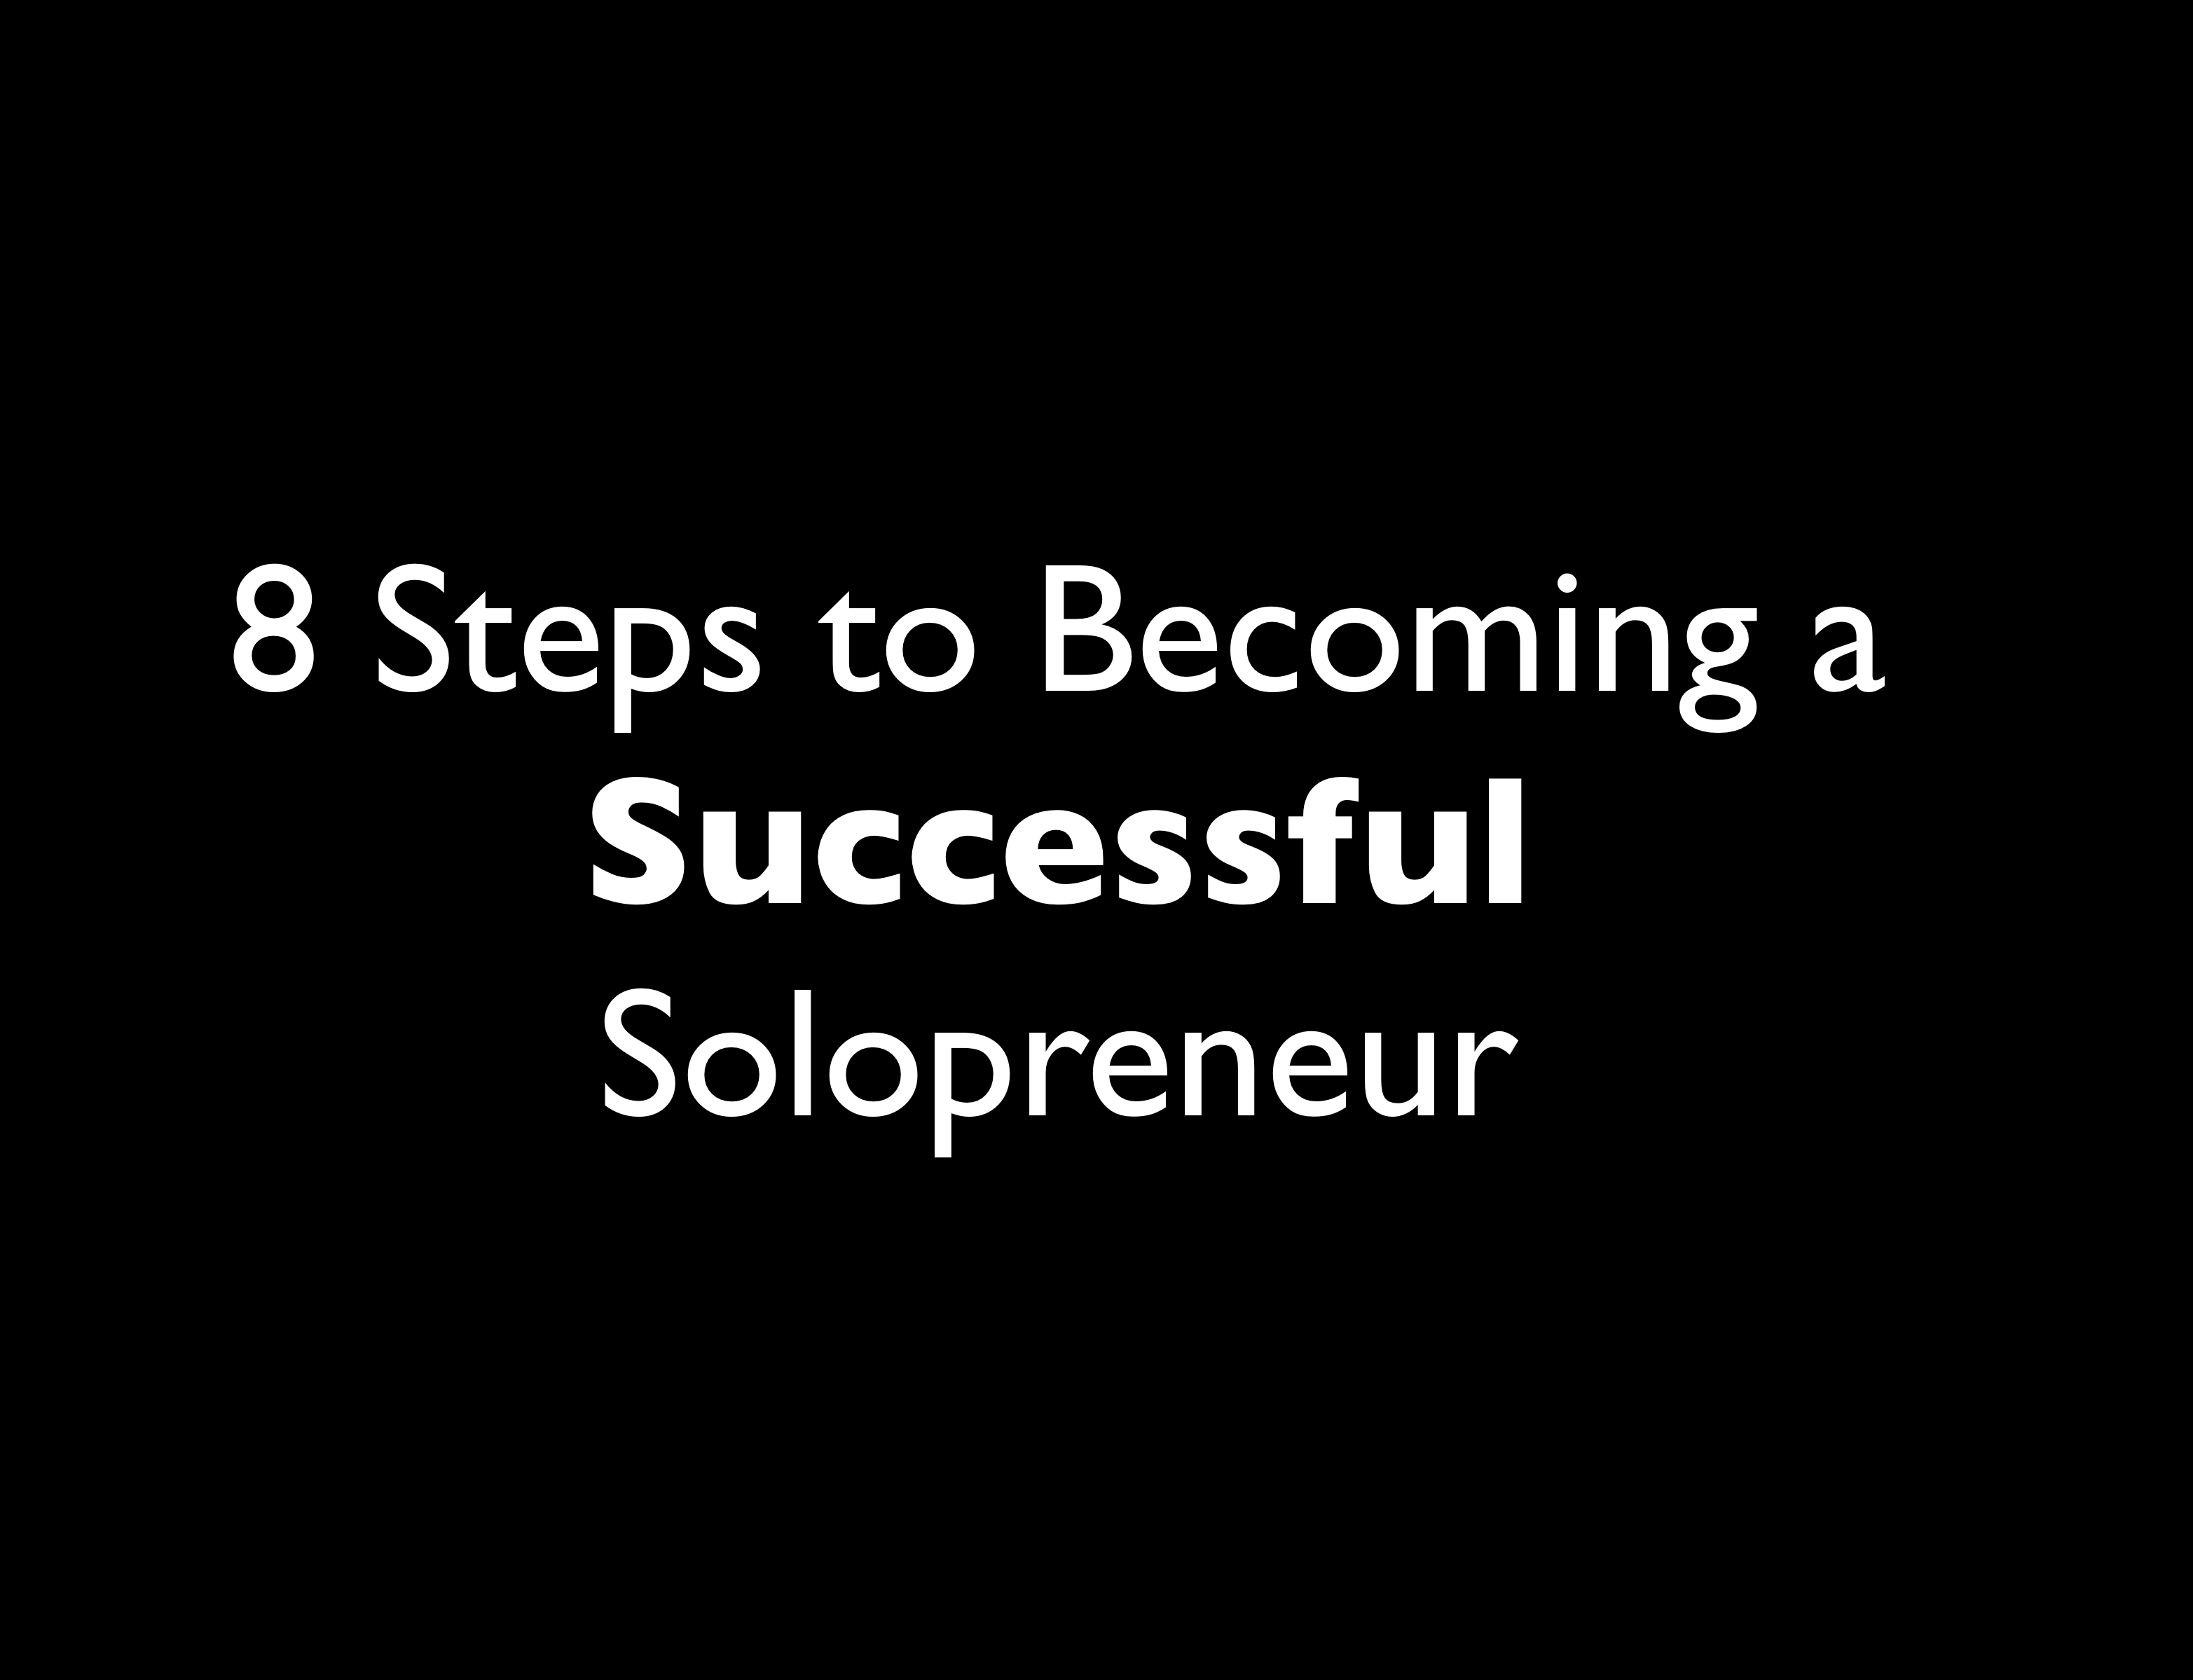 10: The 8 Steps to Becoming a Successful Solopreneur with Dawn Marrs